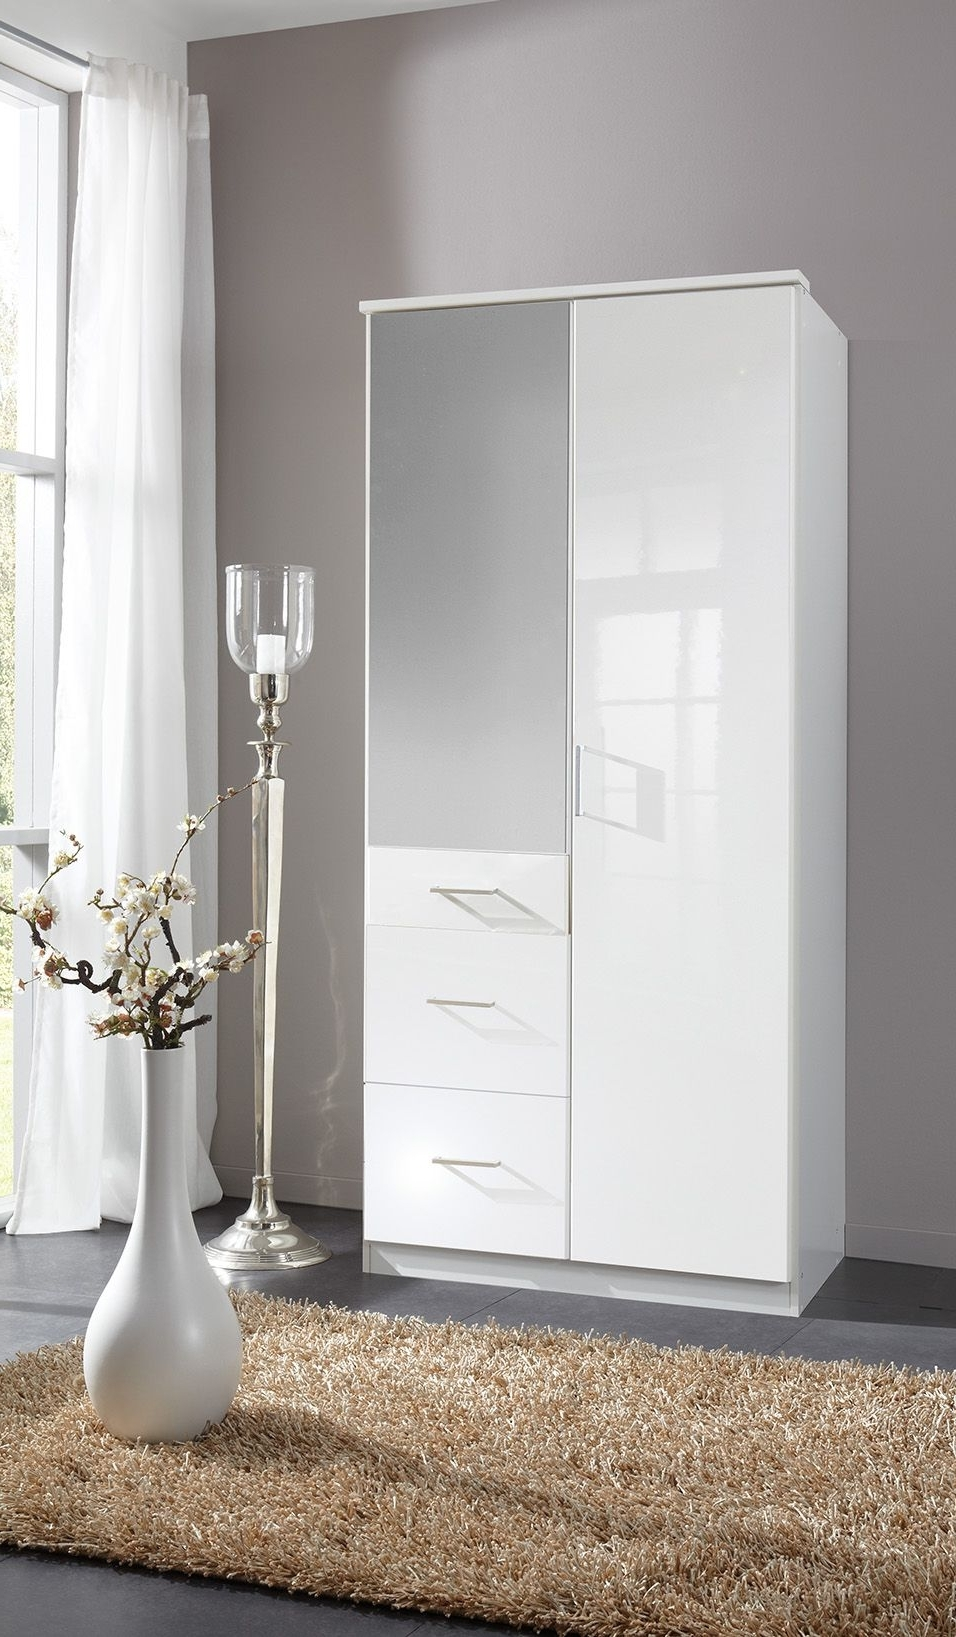 Latest Clack High Gloss White Double Mirrored Wardrobe Intended For White Mirrored Wardrobes (View 12 of 15)